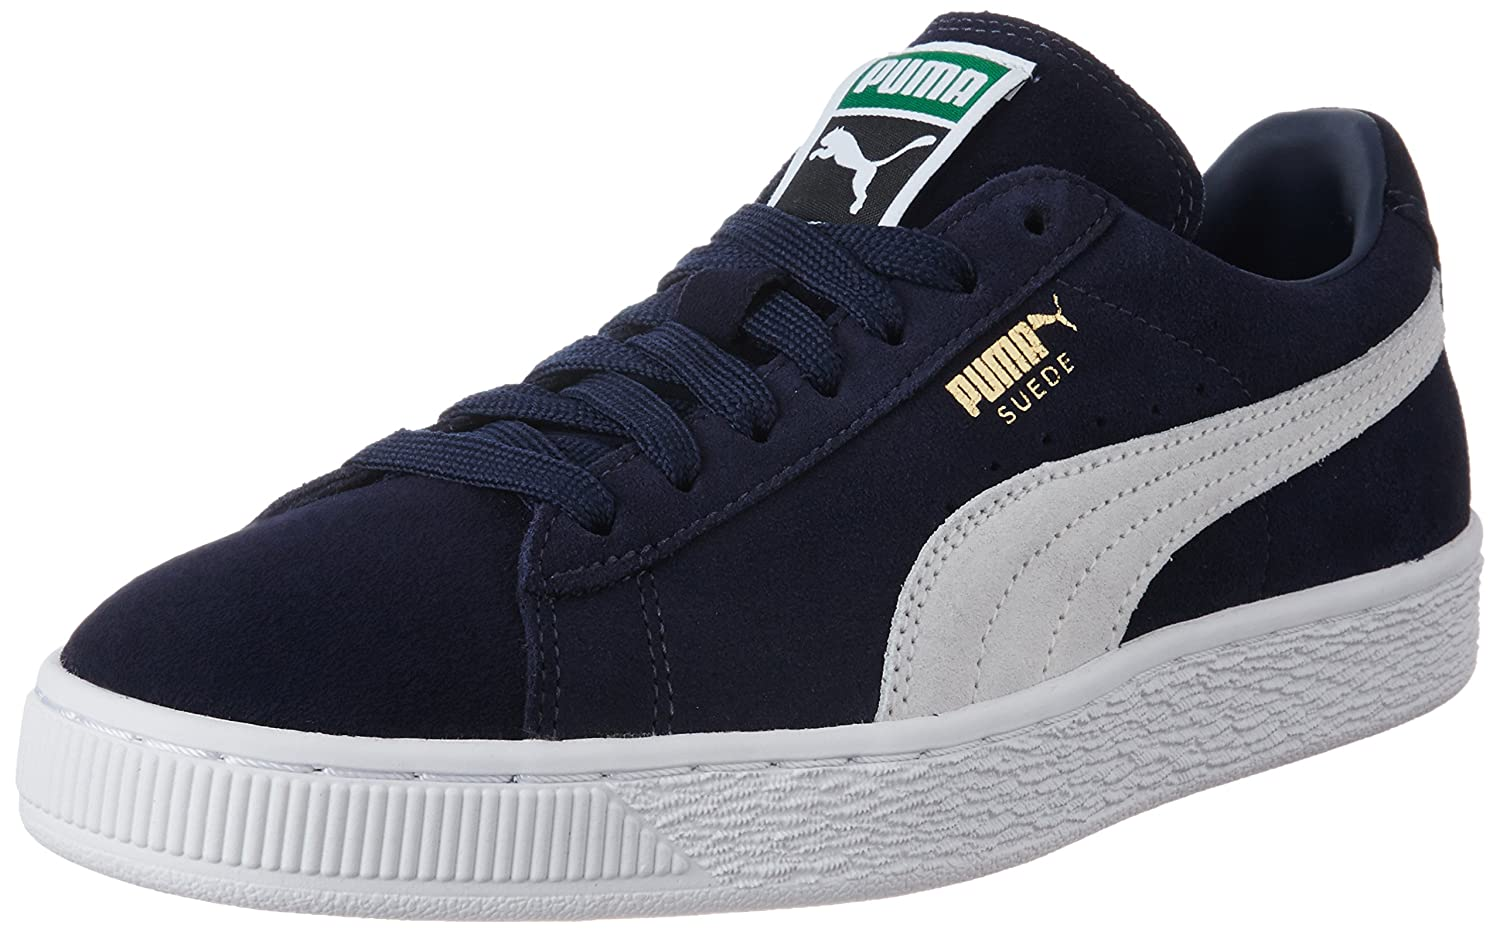 Puma Suede Classic Mens Trainers B00PAJNKEE 8 M US|Black-white